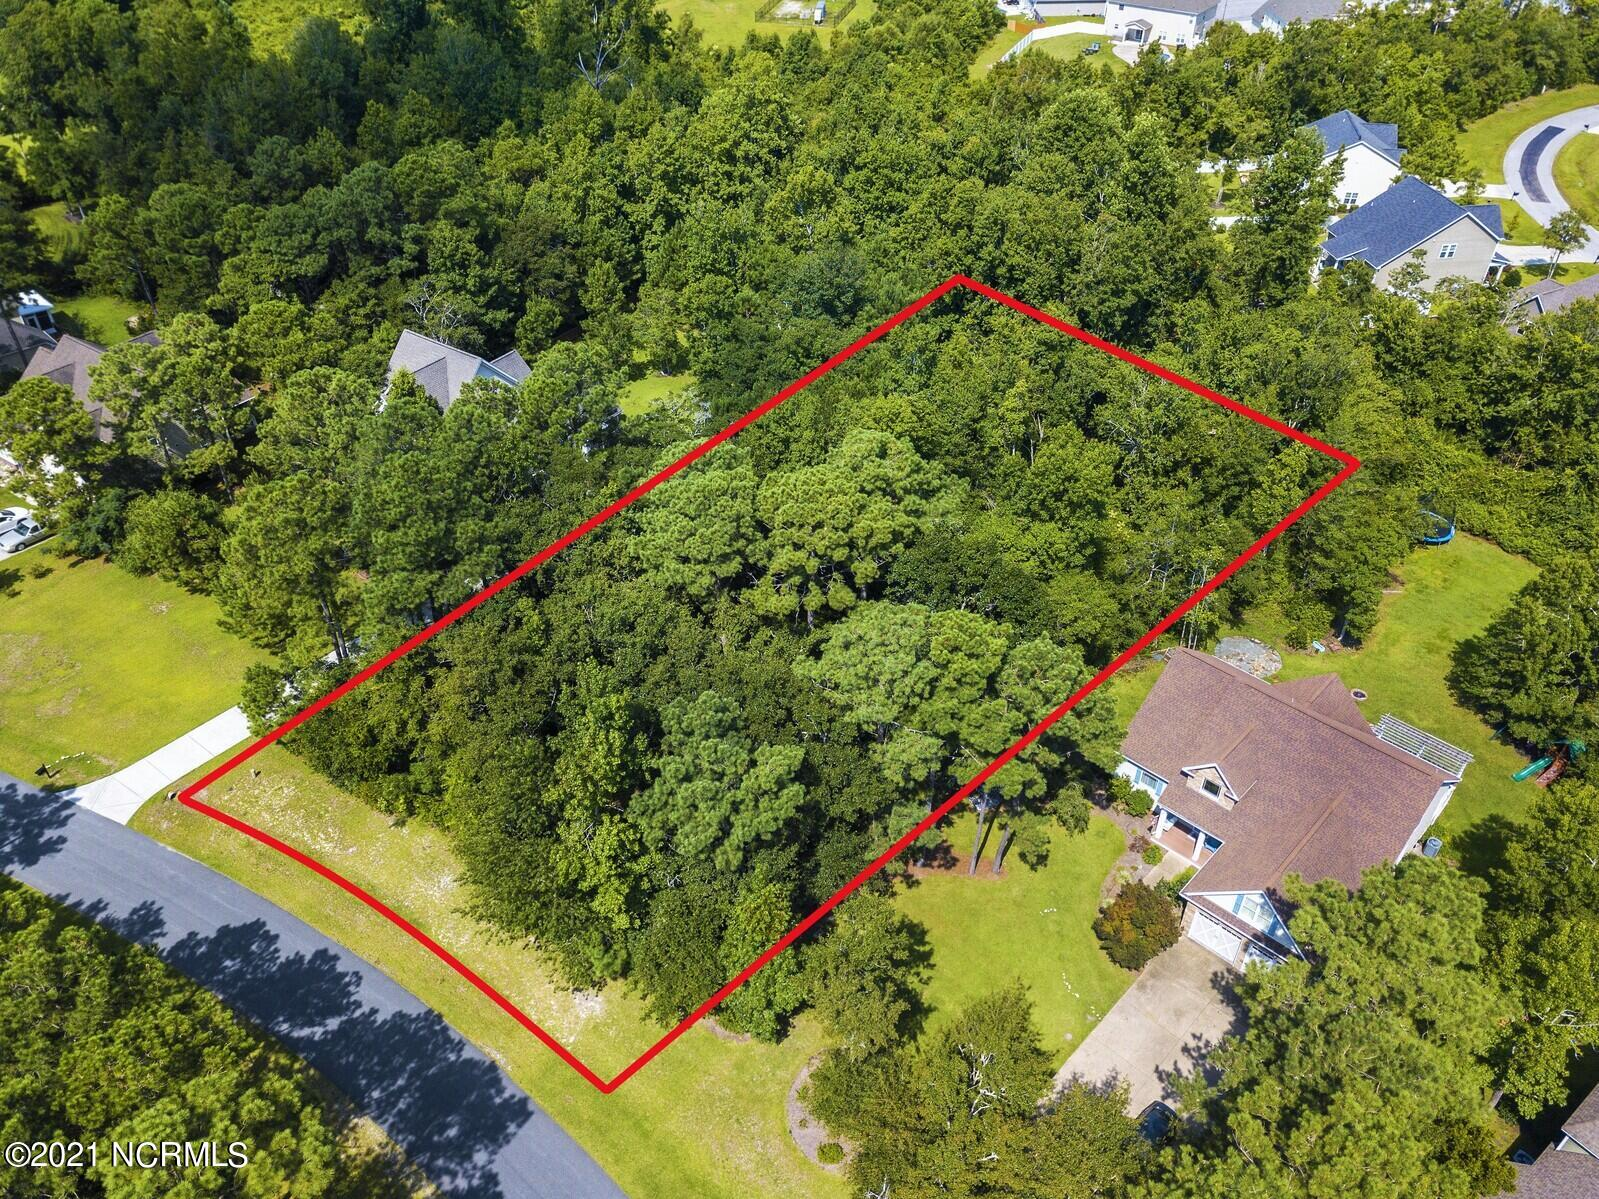 Do you have your ideal floor plan picked out but need somewhere to build? 181 Marina Wynd Way is the perfect lot for you! Just shy of 3/4 of an acre (.73), this beautiful land will provide you with a great place to build and grow your family and memories!Located in the wonderful community of Mimosa Bay, you are not only getting a gorgeous place to build your future on, but also you have the community benefits of a large clubhouse, community pool, tennis courts, and access to Alligator Bay waterways! If the amenities of Mimosa Bay aren't enough to seal the deal, your new home is just 8 minutes from the world-renowned Topsail Island beaches, exquisite local dining golfing, and shopping. Also, you will be just 10 mins from Stone Bay (MARSOC) and Camp Lejeune's back gate. The lot has already been Prec'd for a 4-bedroom house! Find that floor plan you love and build it right here on 181 Marina Wynd Way!Give me a call and let me help you ''Unlock the Possibilities'' today!